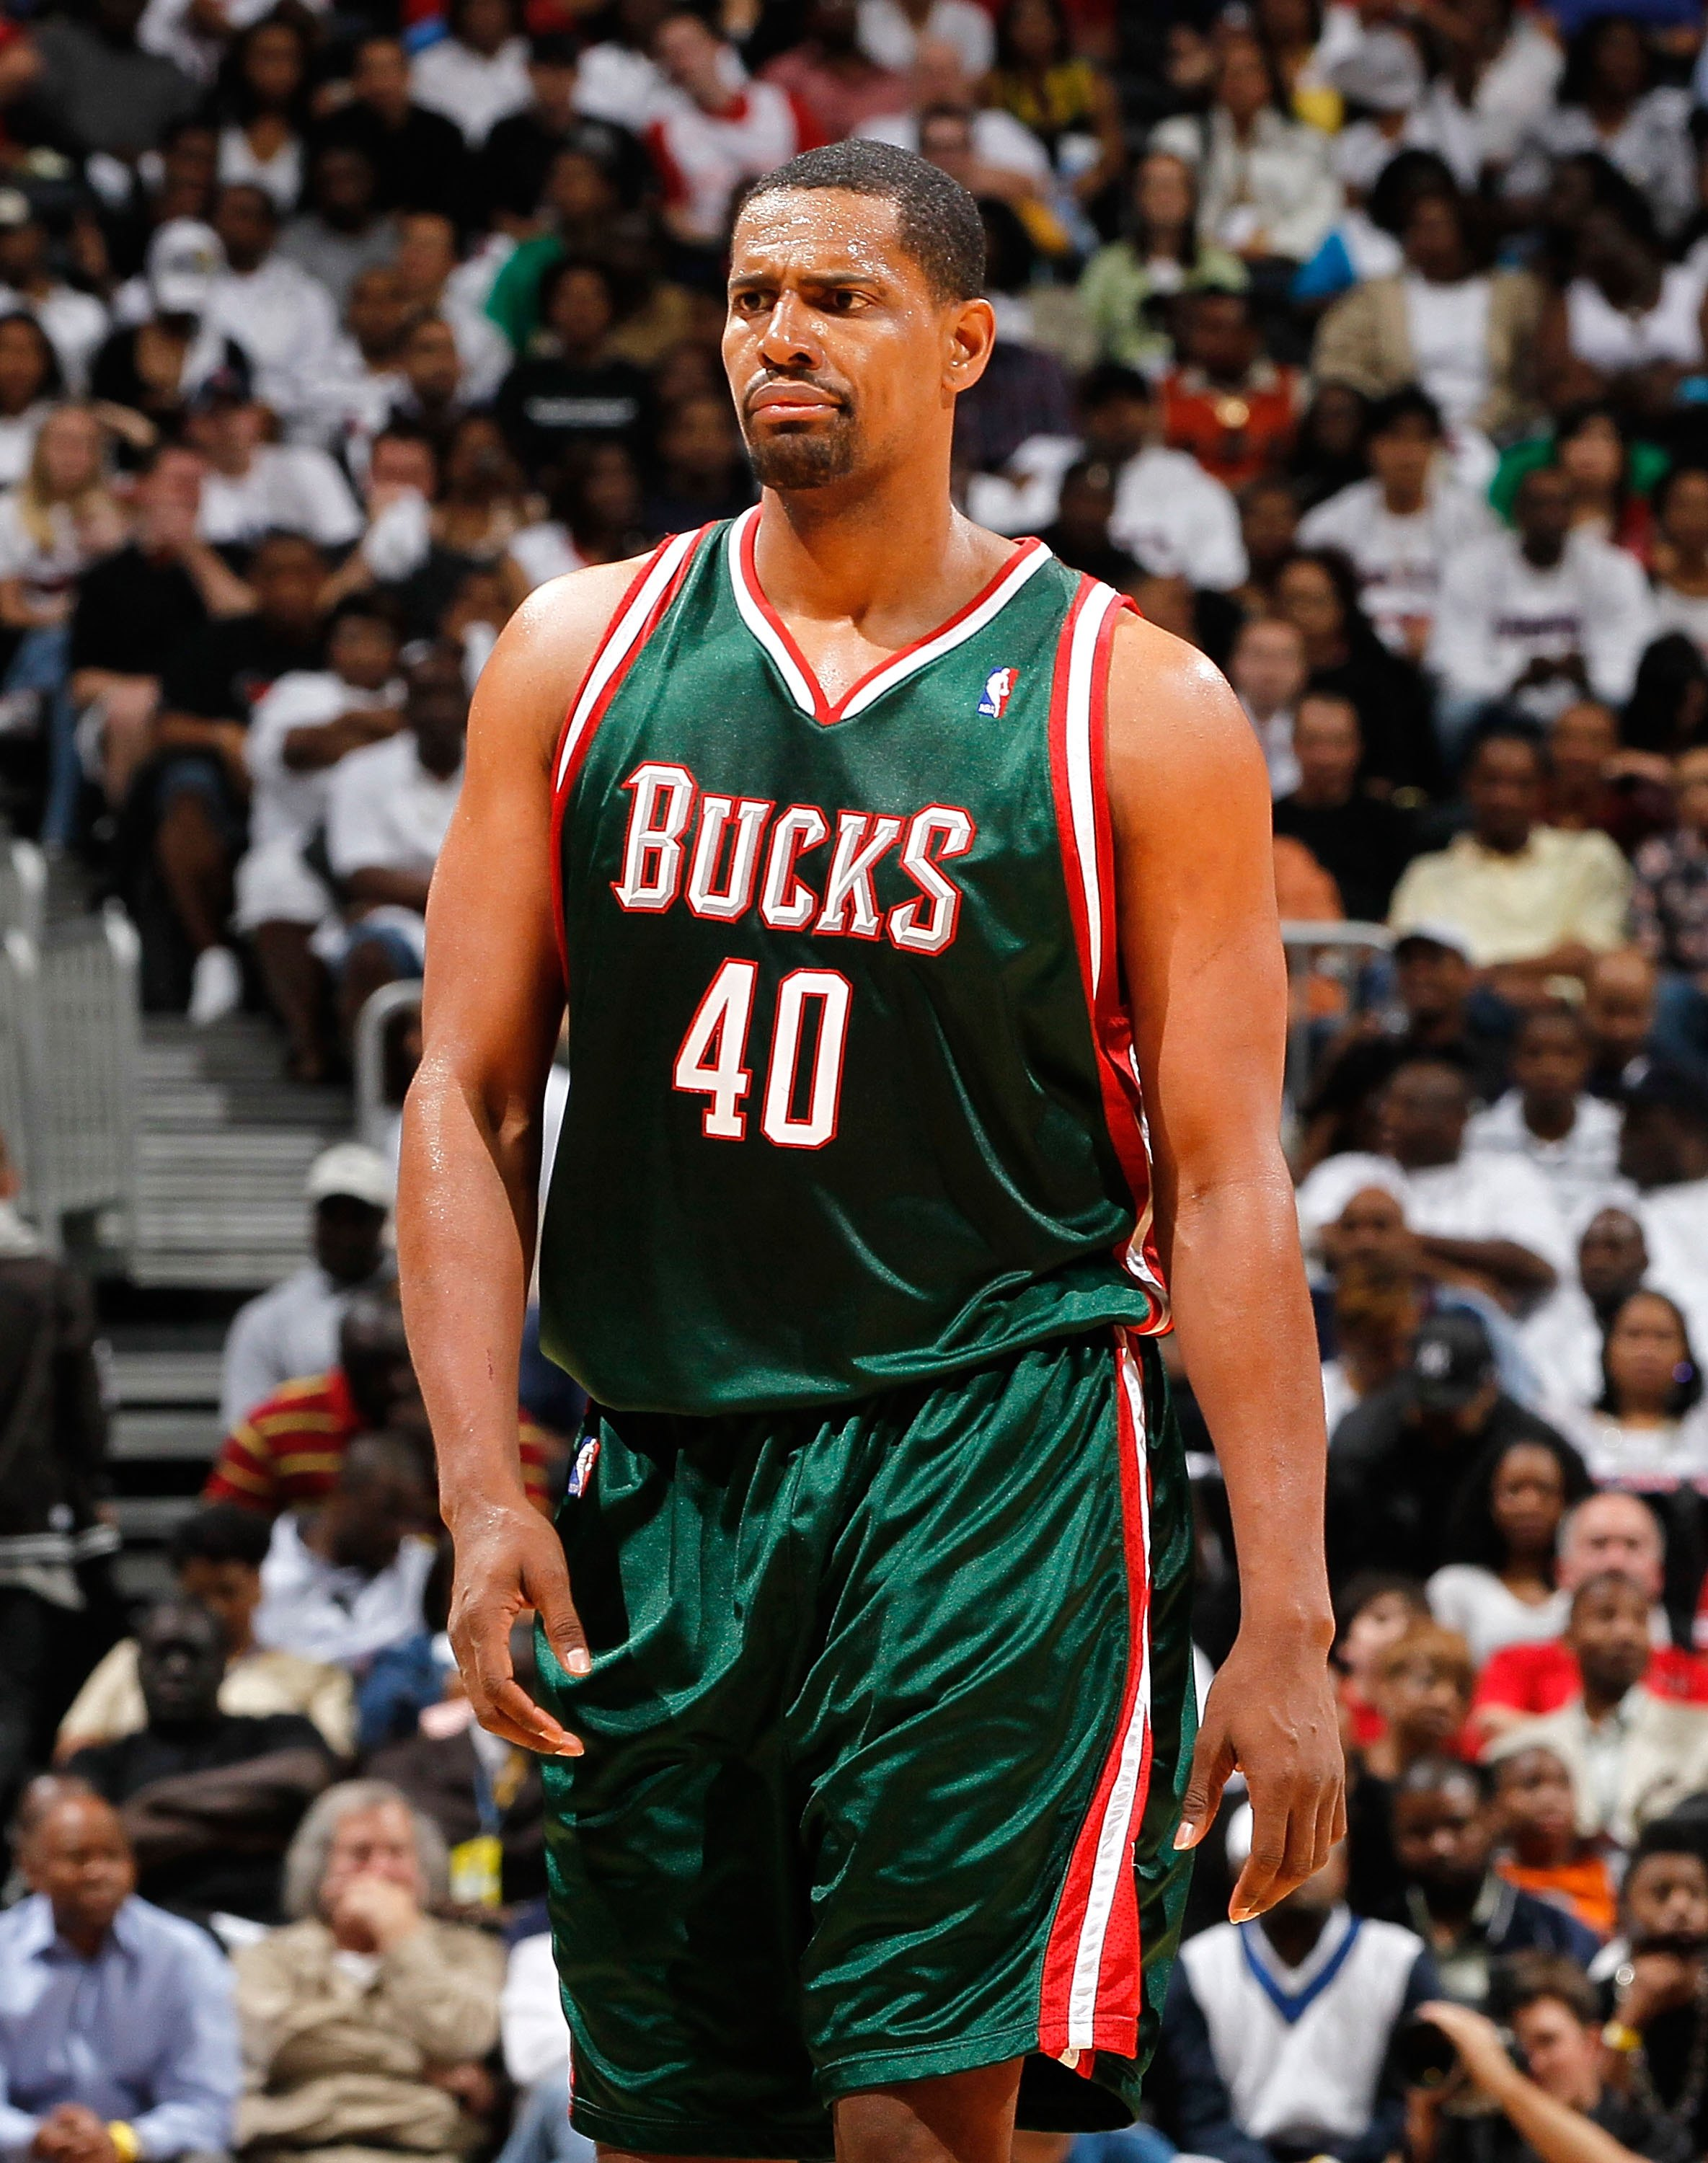 ATLANTA - APRIL 28:  Kurt Thomas #40 of the Milwaukee Bucks against the Atlanta Hawks during Game Five of the Eastern Conference Quarterfinals of the 2010 NBA Playoffs at Philips Arena on April 28, 2010 in Atlanta, Georgia.  NOTE TO USER: User expressly a